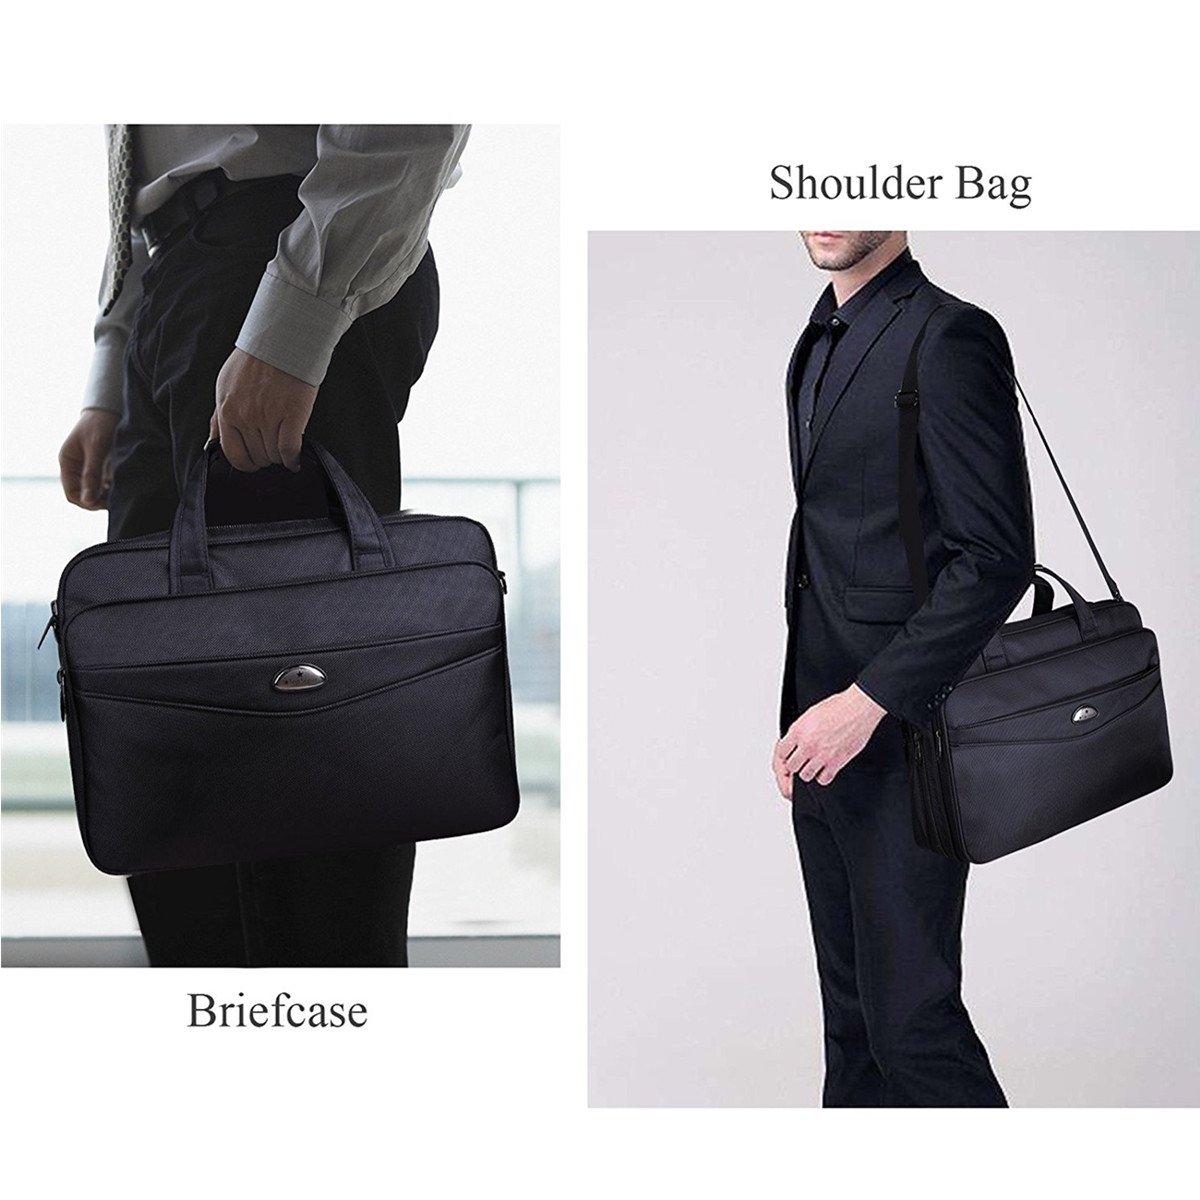 Briefcase 15.6 Inch Laptop Bag Laptop Messenger Bag, Business Office Bag Multifunctional Laptop Case Shoulder Bags for Men Women Fit for 15'' 15.6 Inch Acer HP Dell Lenovo Computer Notebook MacBook by Top Super (Image #7)